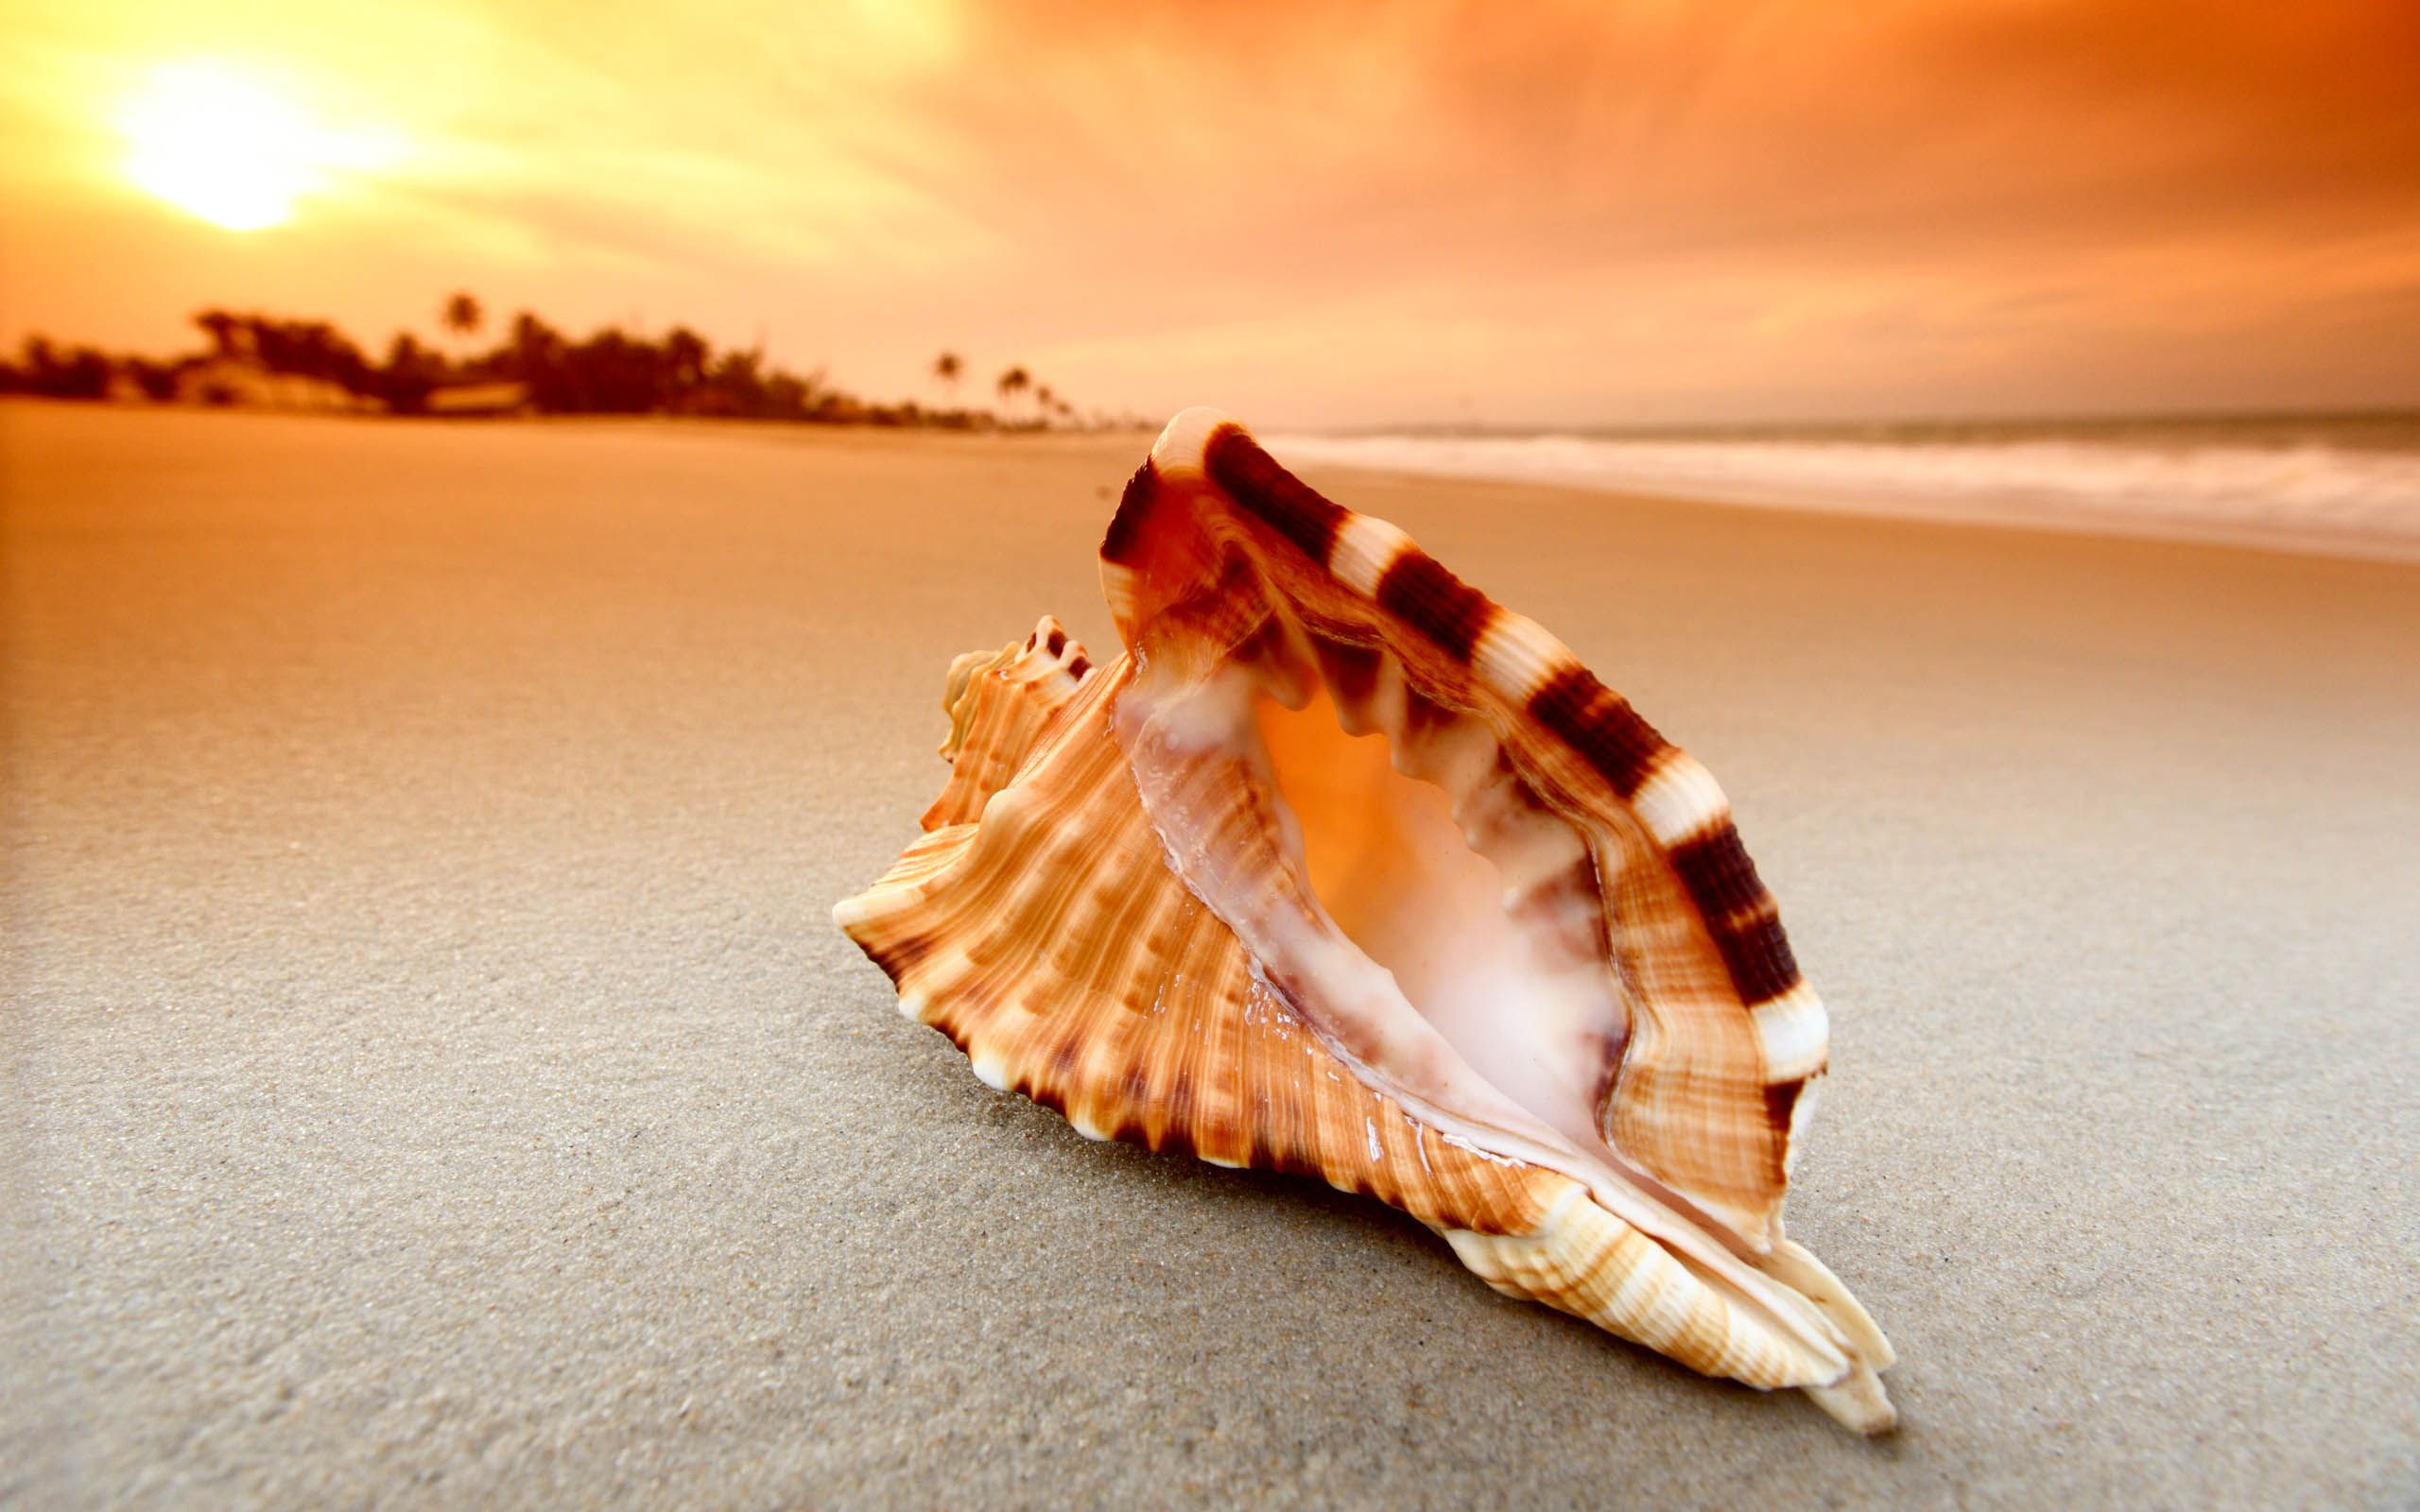 Shell Awesome Hd Wallpapers 2015 High Quality All Hd Wallpapers Hd Cool Wallpapers Hd Wallpaper All Hd Wallpaper